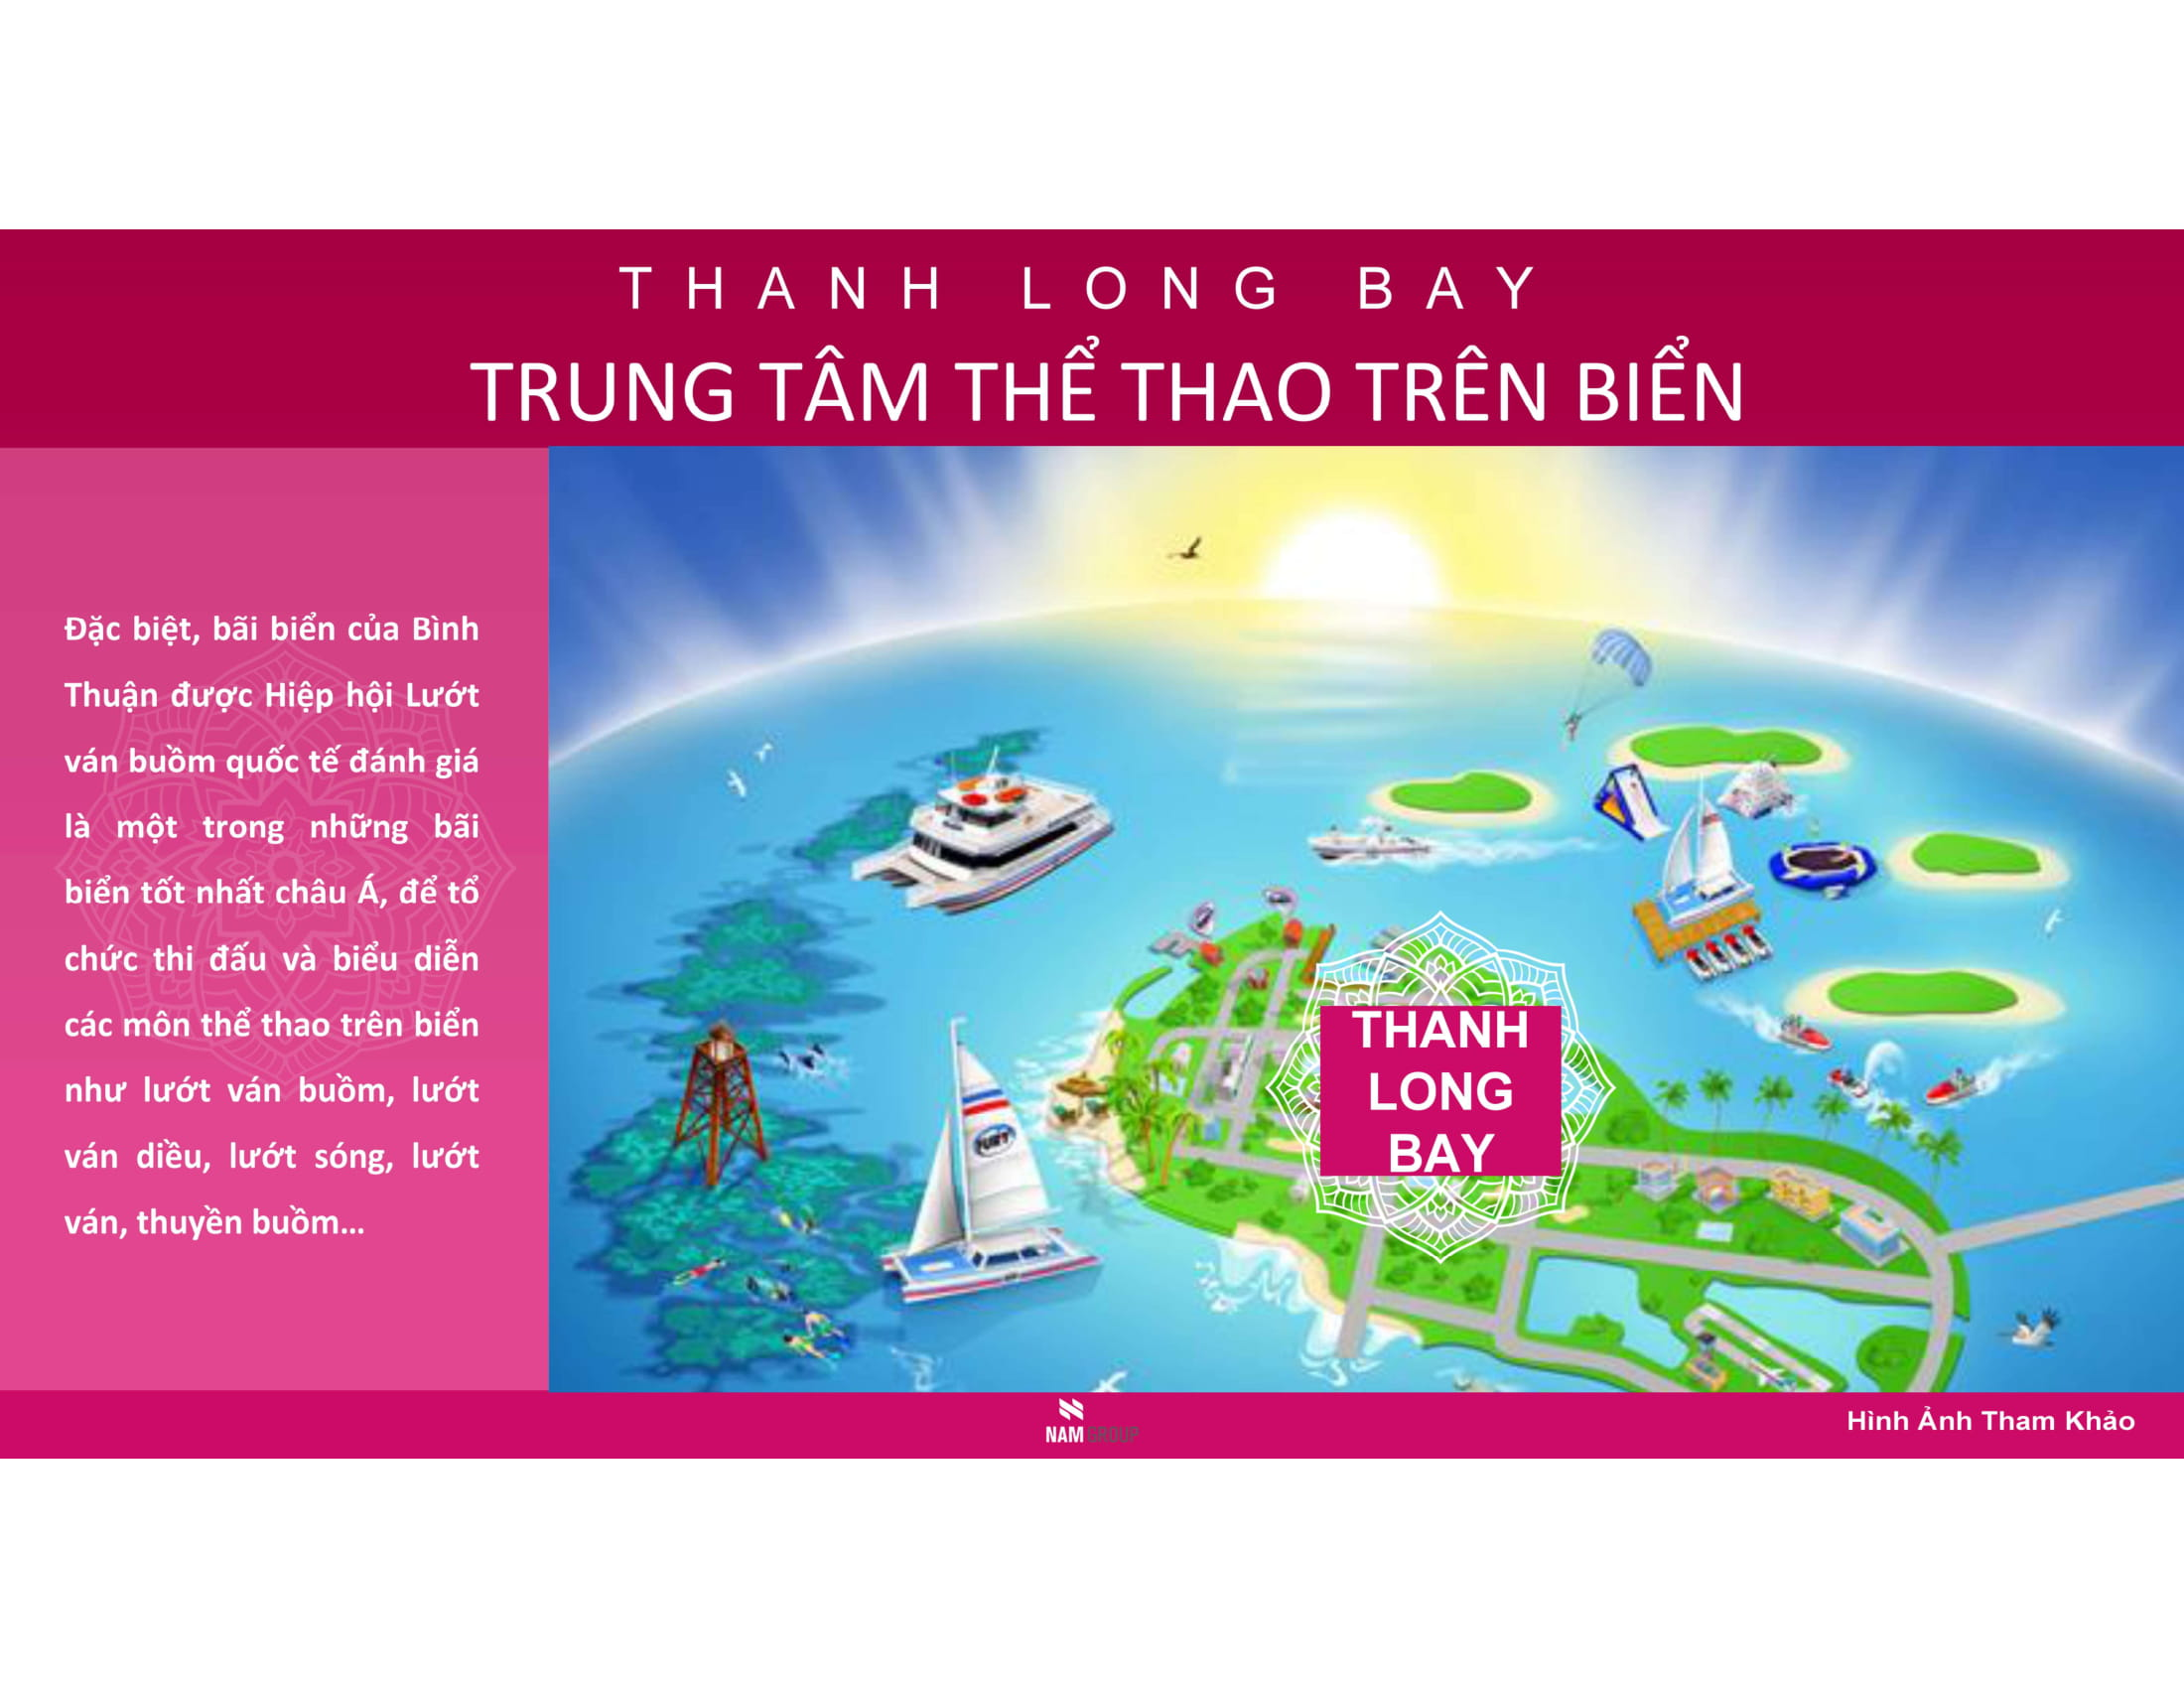 trung tam the thao thanh long bay